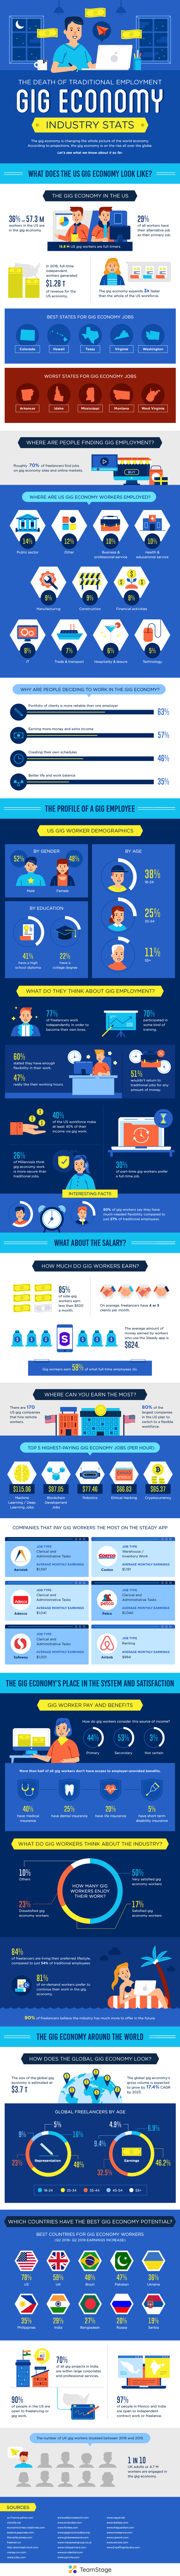 The Impact of the Gig Economy on Traditional Employment